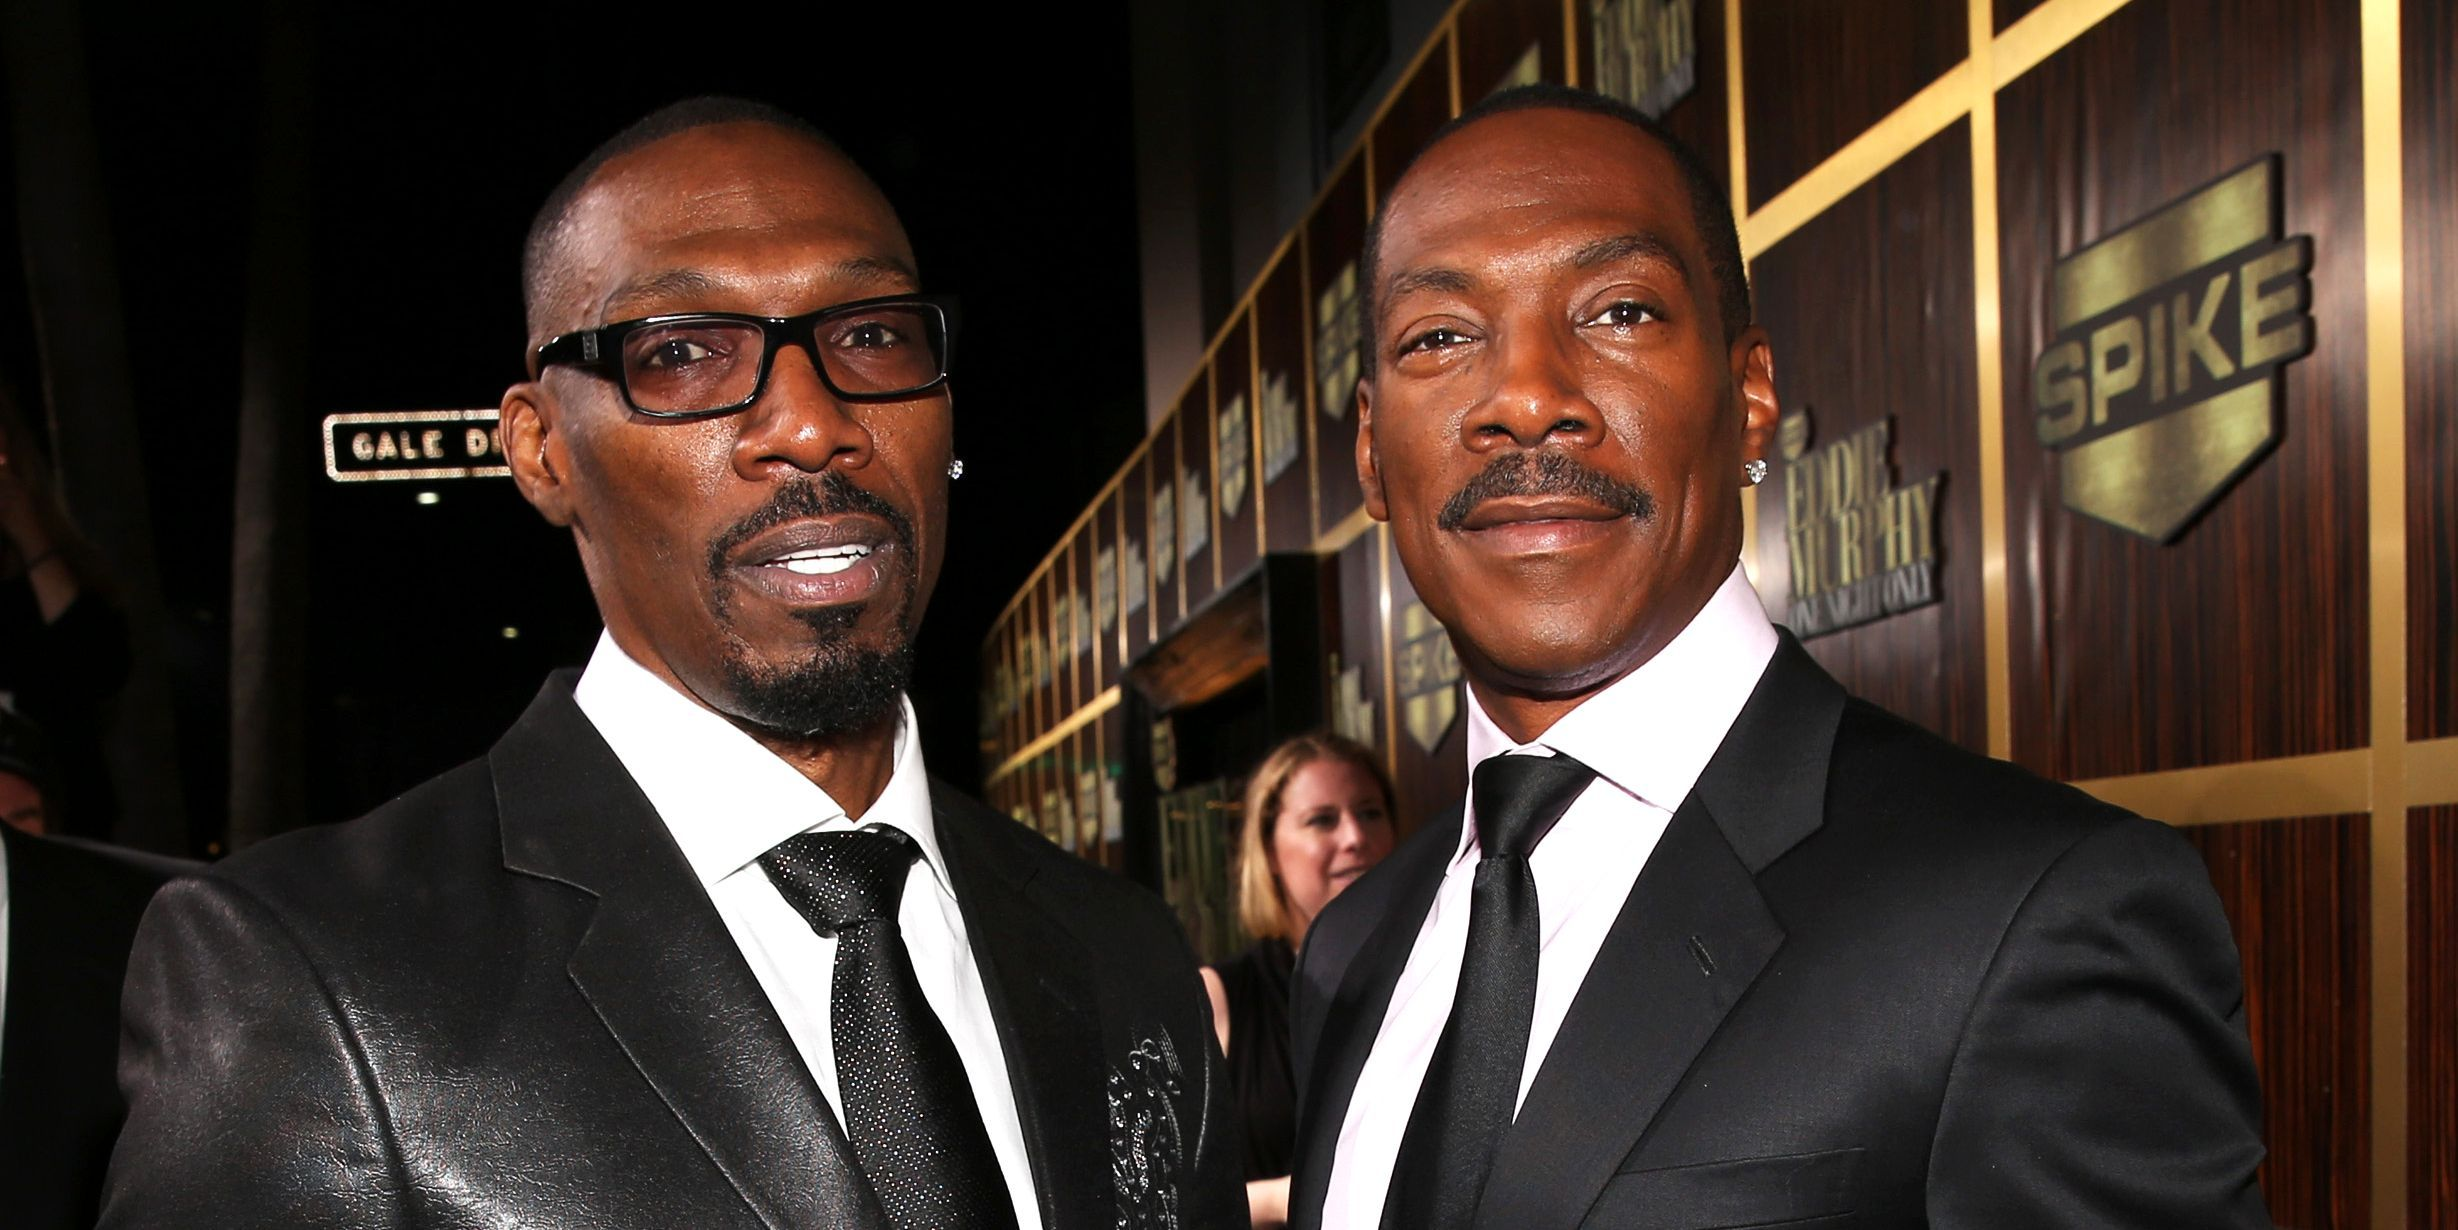 Eddie Murphy Remembers His Brother in Emotional Statement